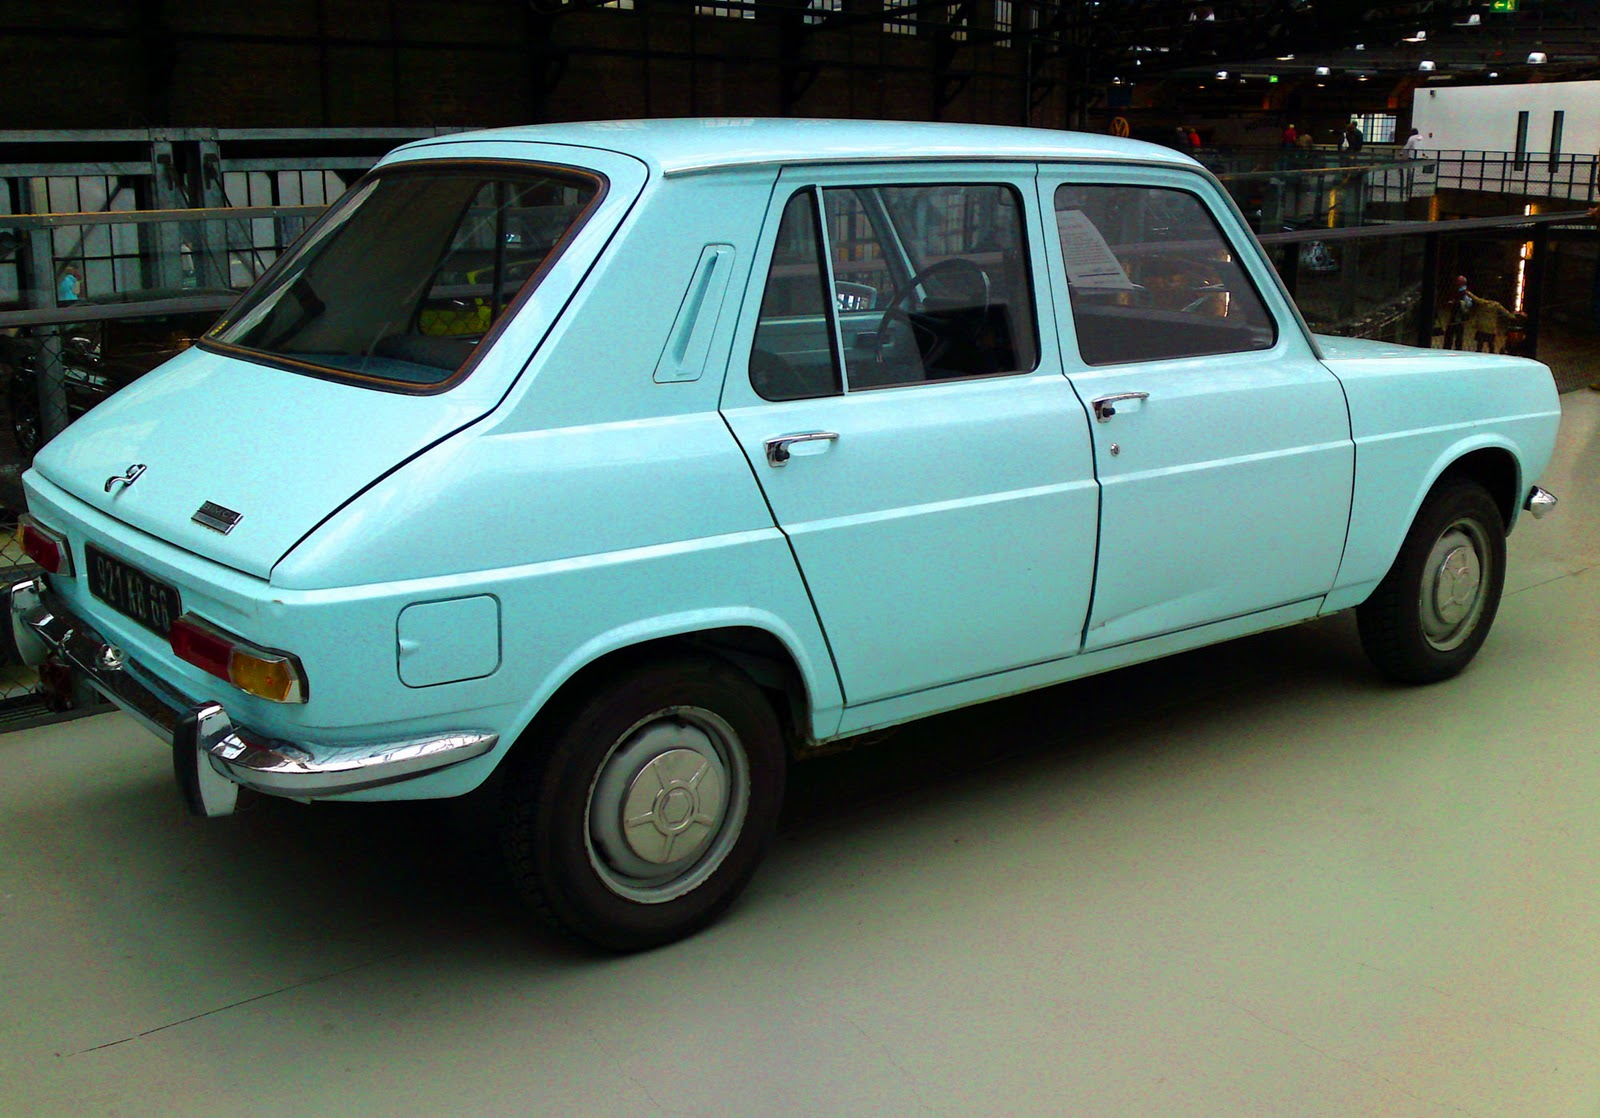 1960s Simca 1000f likewise 1593 1332491 Ford Focus Fiesta Link Cable Gearbox besides Y2016 also Ami Gallery moreover Mitsubishi Pajeromonteroshogun Swb 2003. on citroen sold in usa